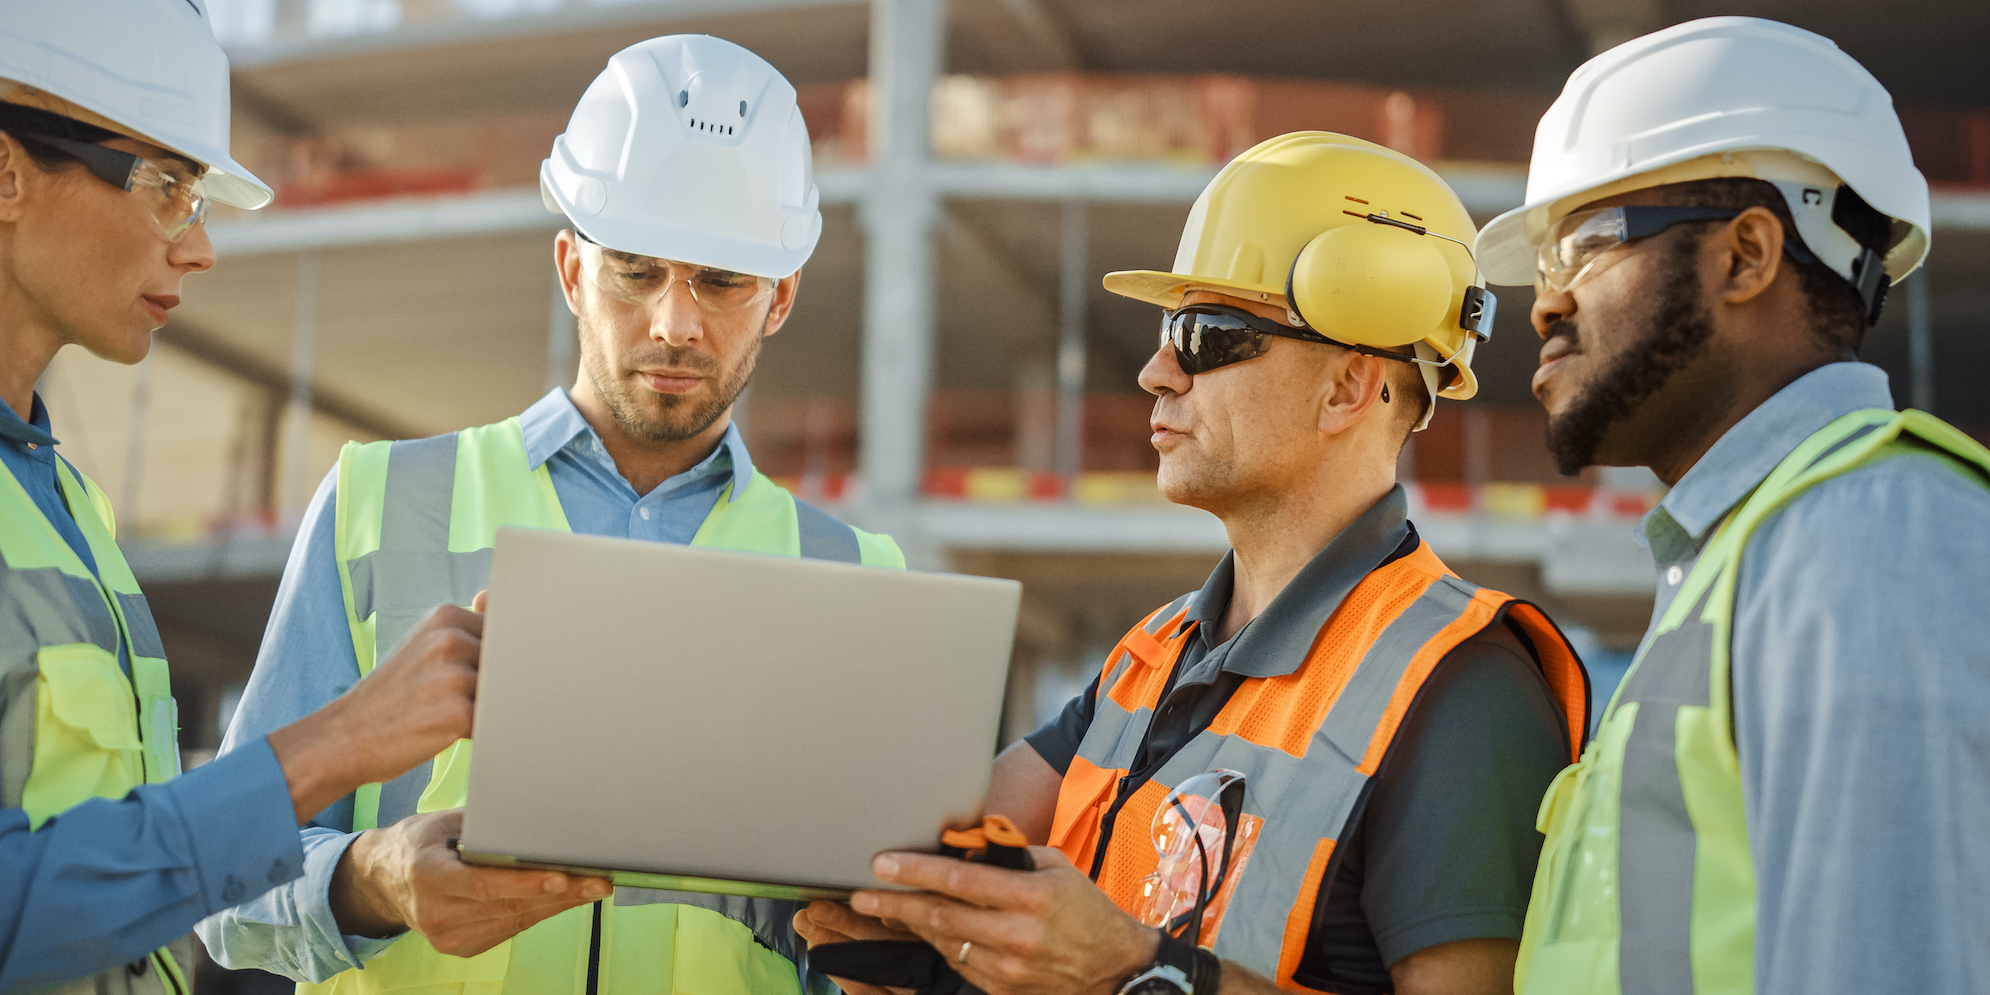 Best Practices for On-site Utility Protection Programs